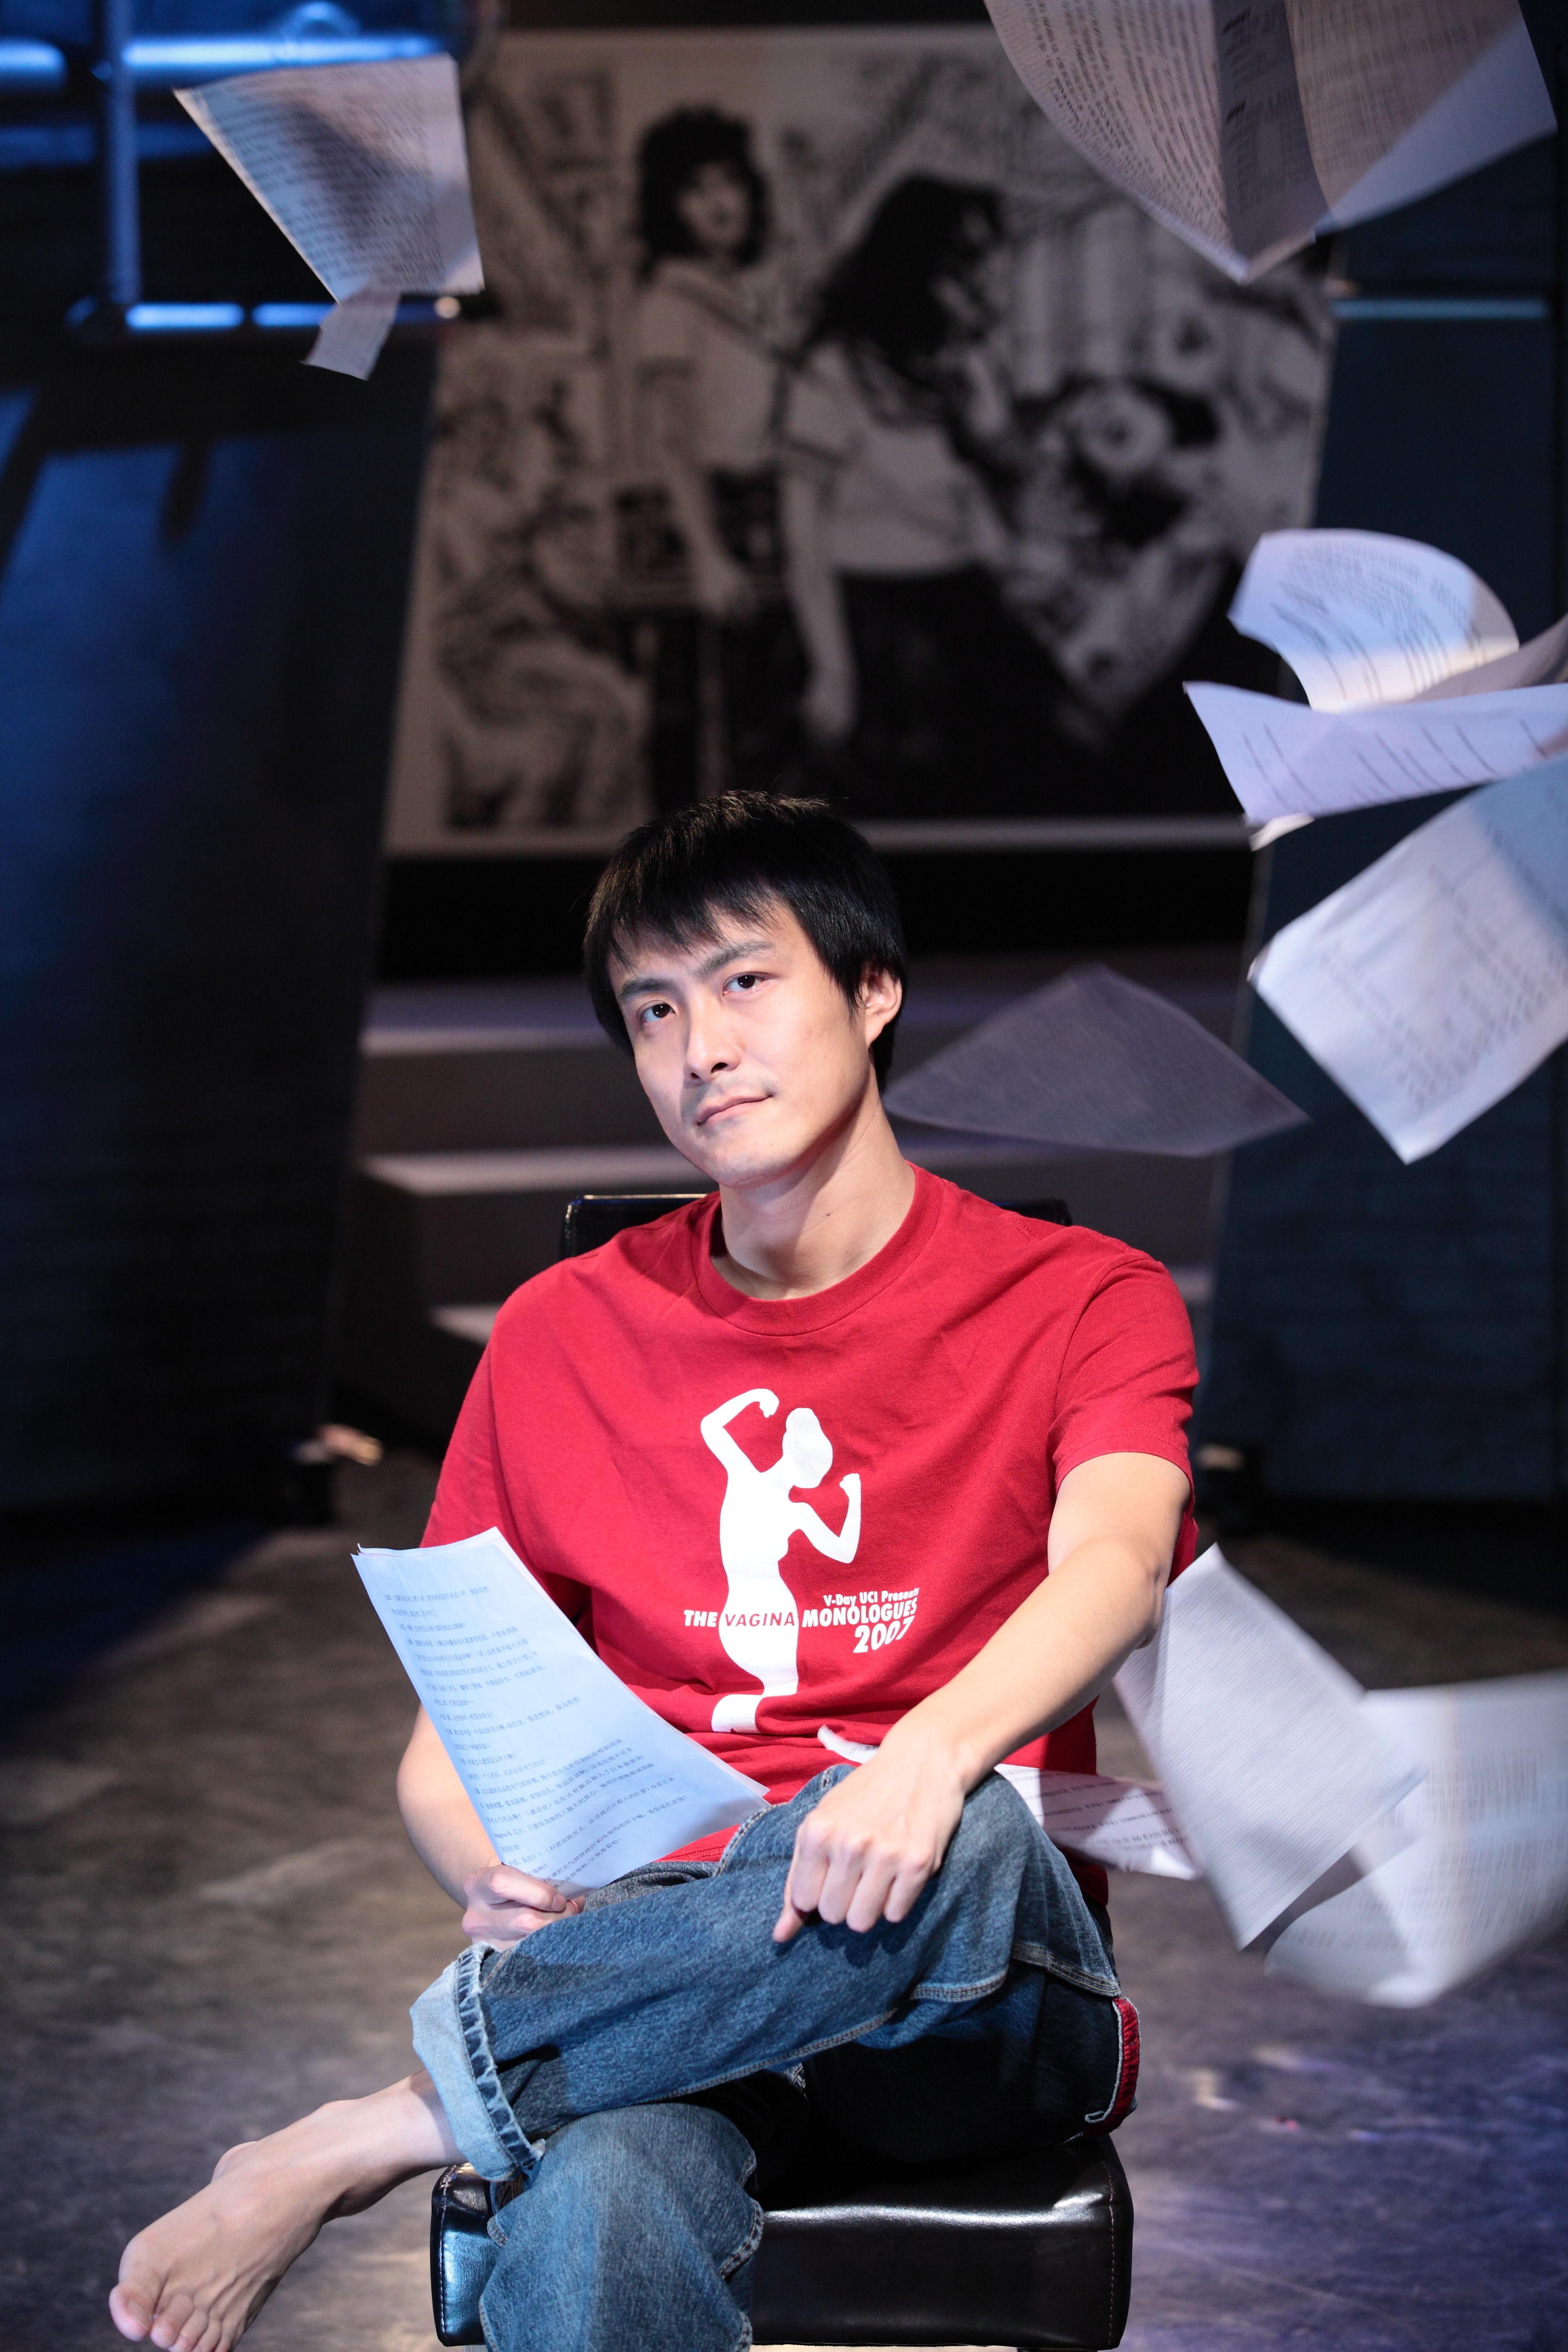 From previous remakes of the classics to <i>The Plague</i>, Wang has enlivened the works with his sensitivity to and observation of contemporary society © Zhou Jing